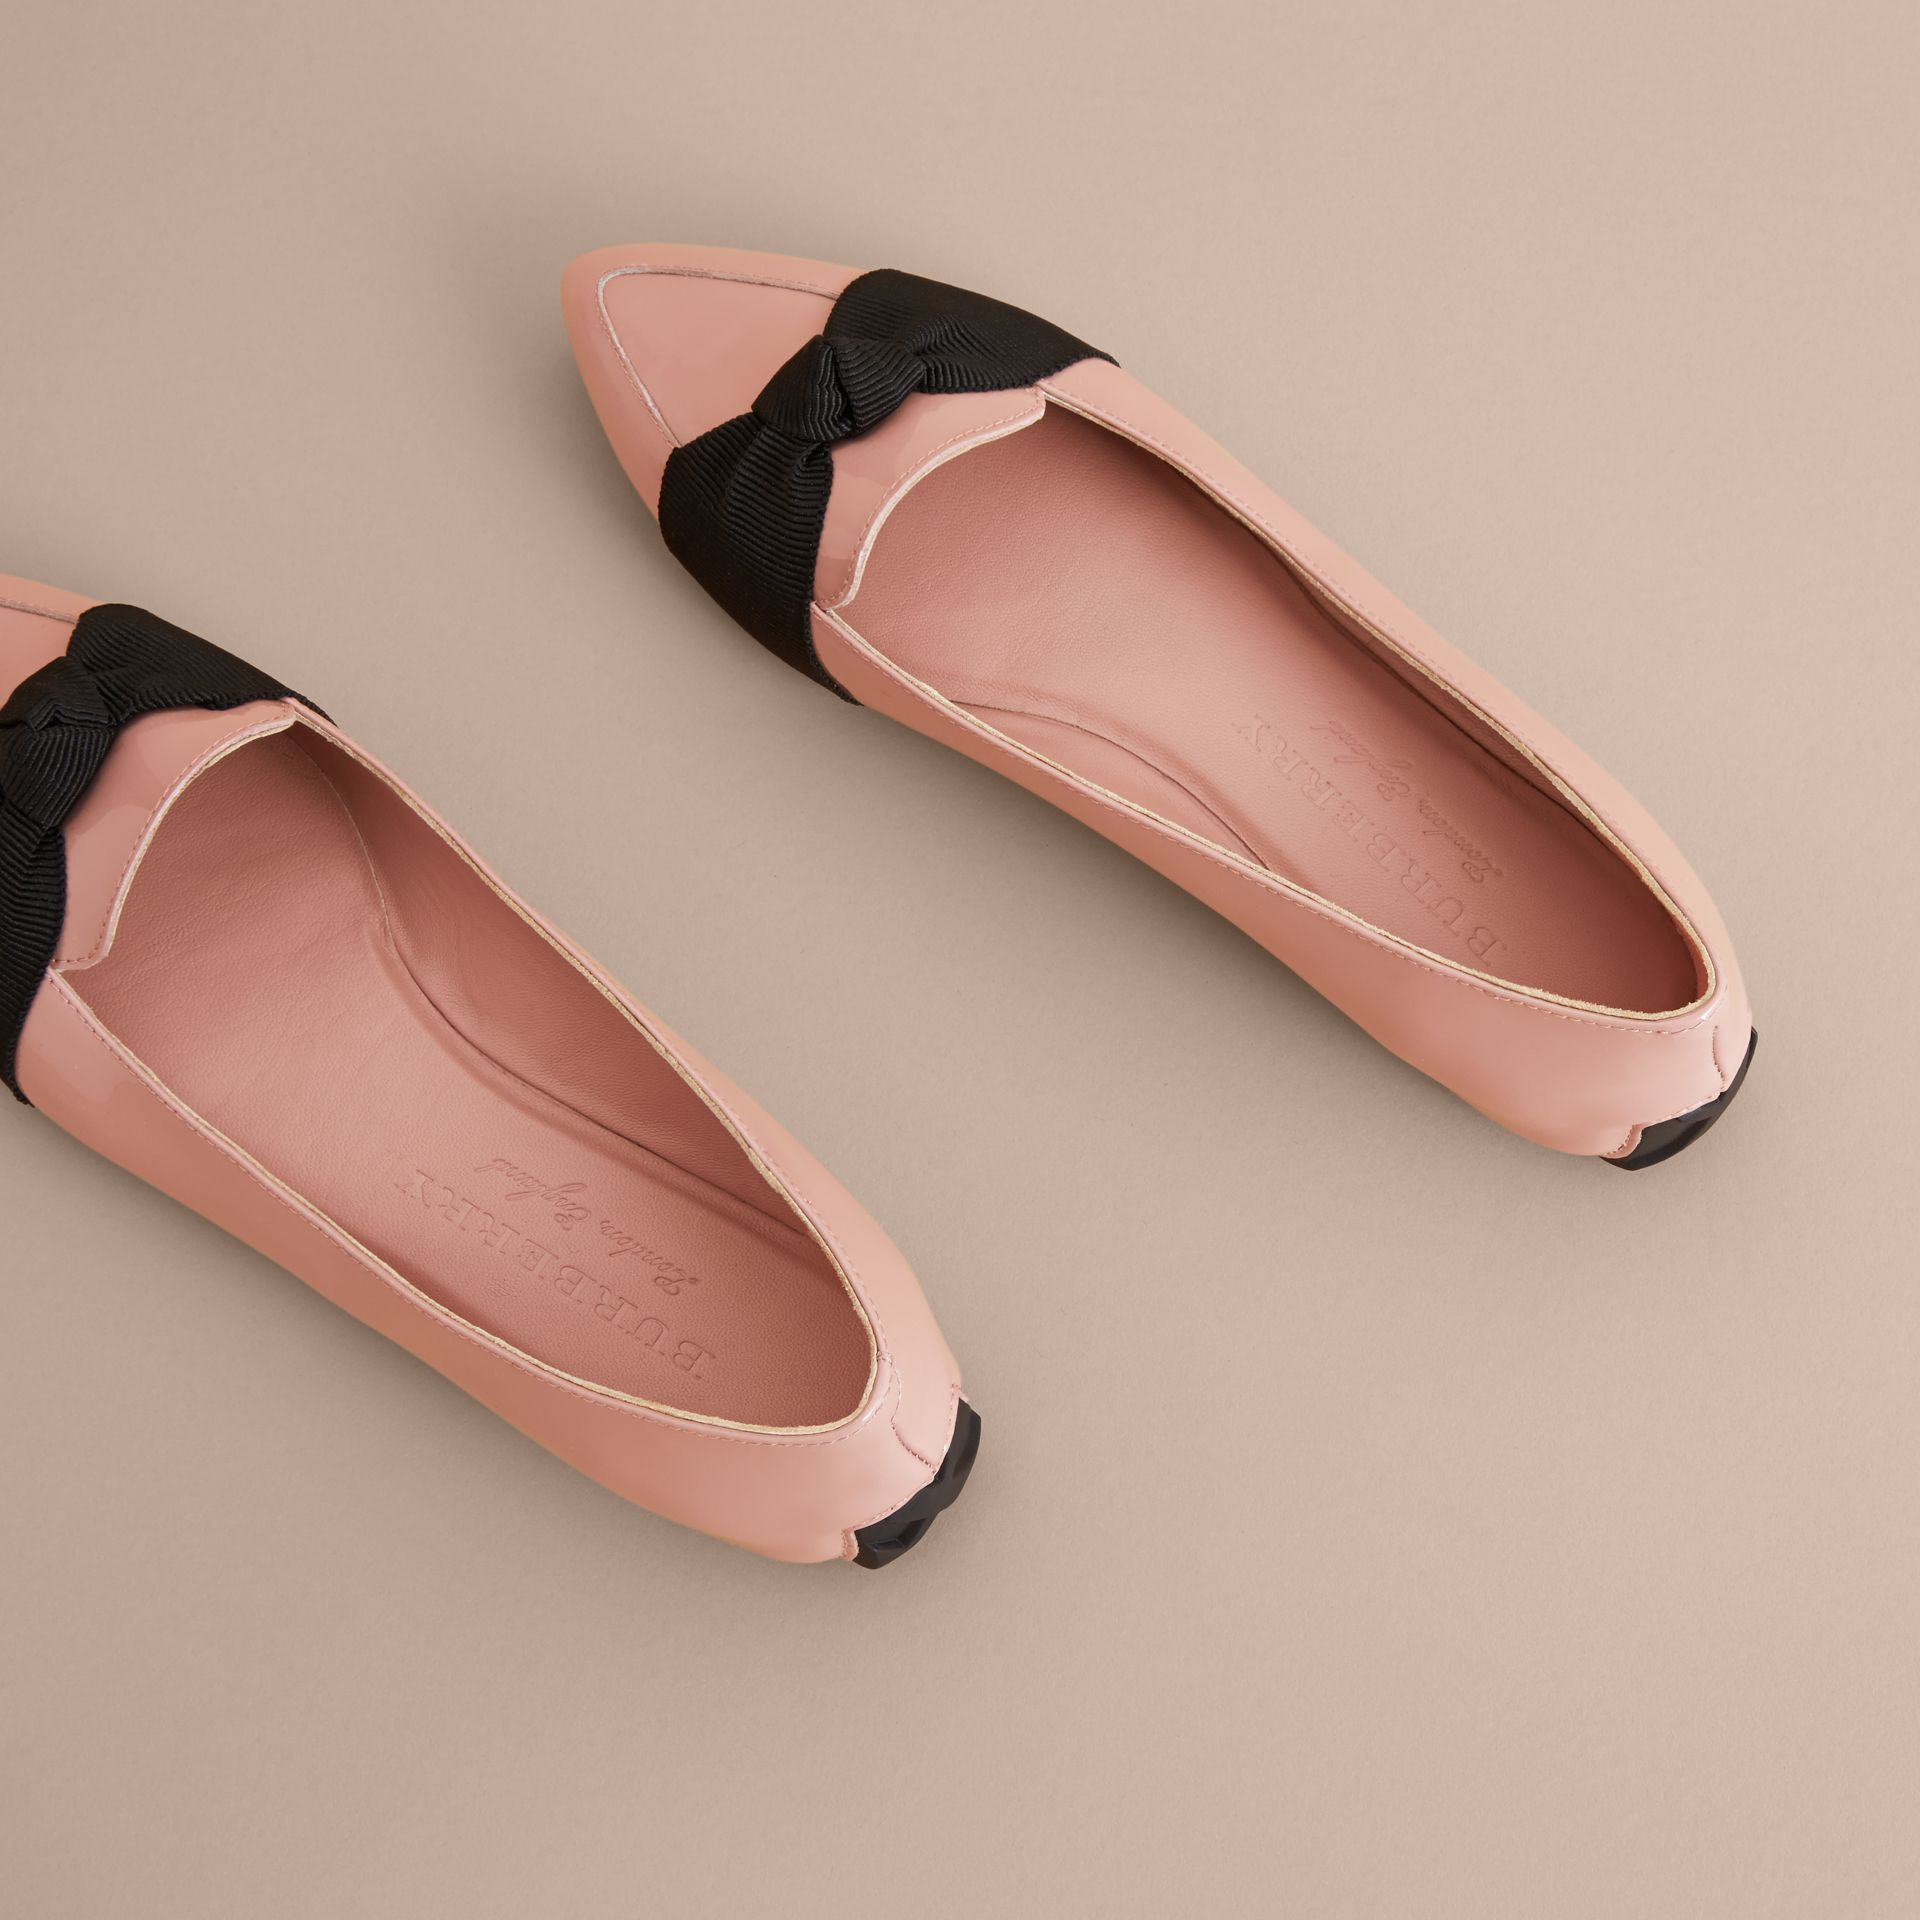 Grosgrain Bow Patent Leather Loafers Nude Pink - gallery image 4